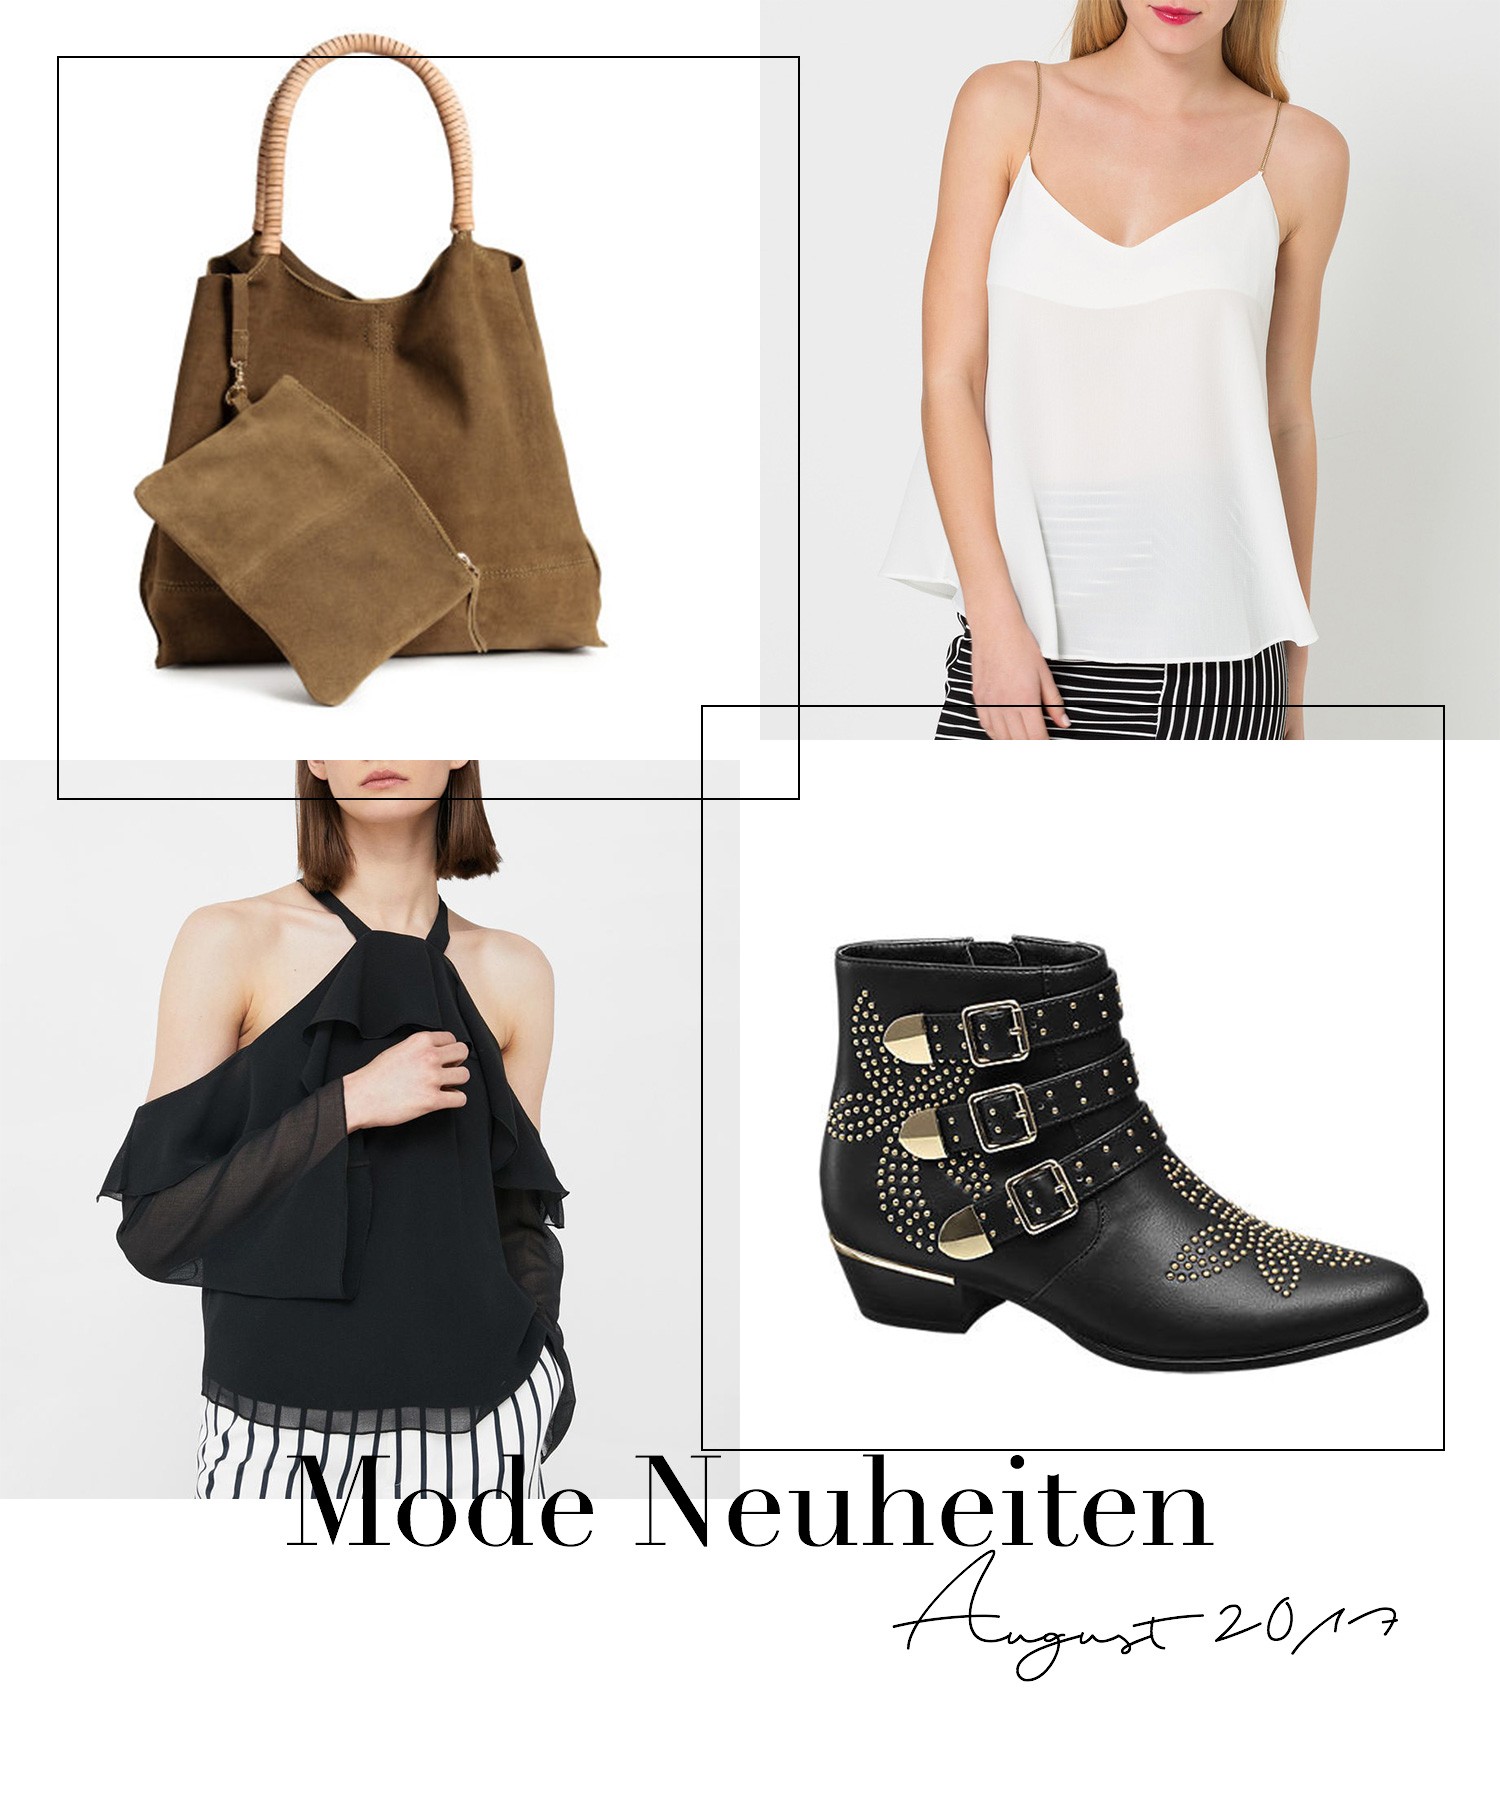 August Favoriten 2017, Monatsrückblick, Mode Neuheiten, Khaki Wildledertasche H&M Premium, Mango schulterfreie Bluse, Deichmann Stiefeletten mit Nieten, bezauberndenana.de